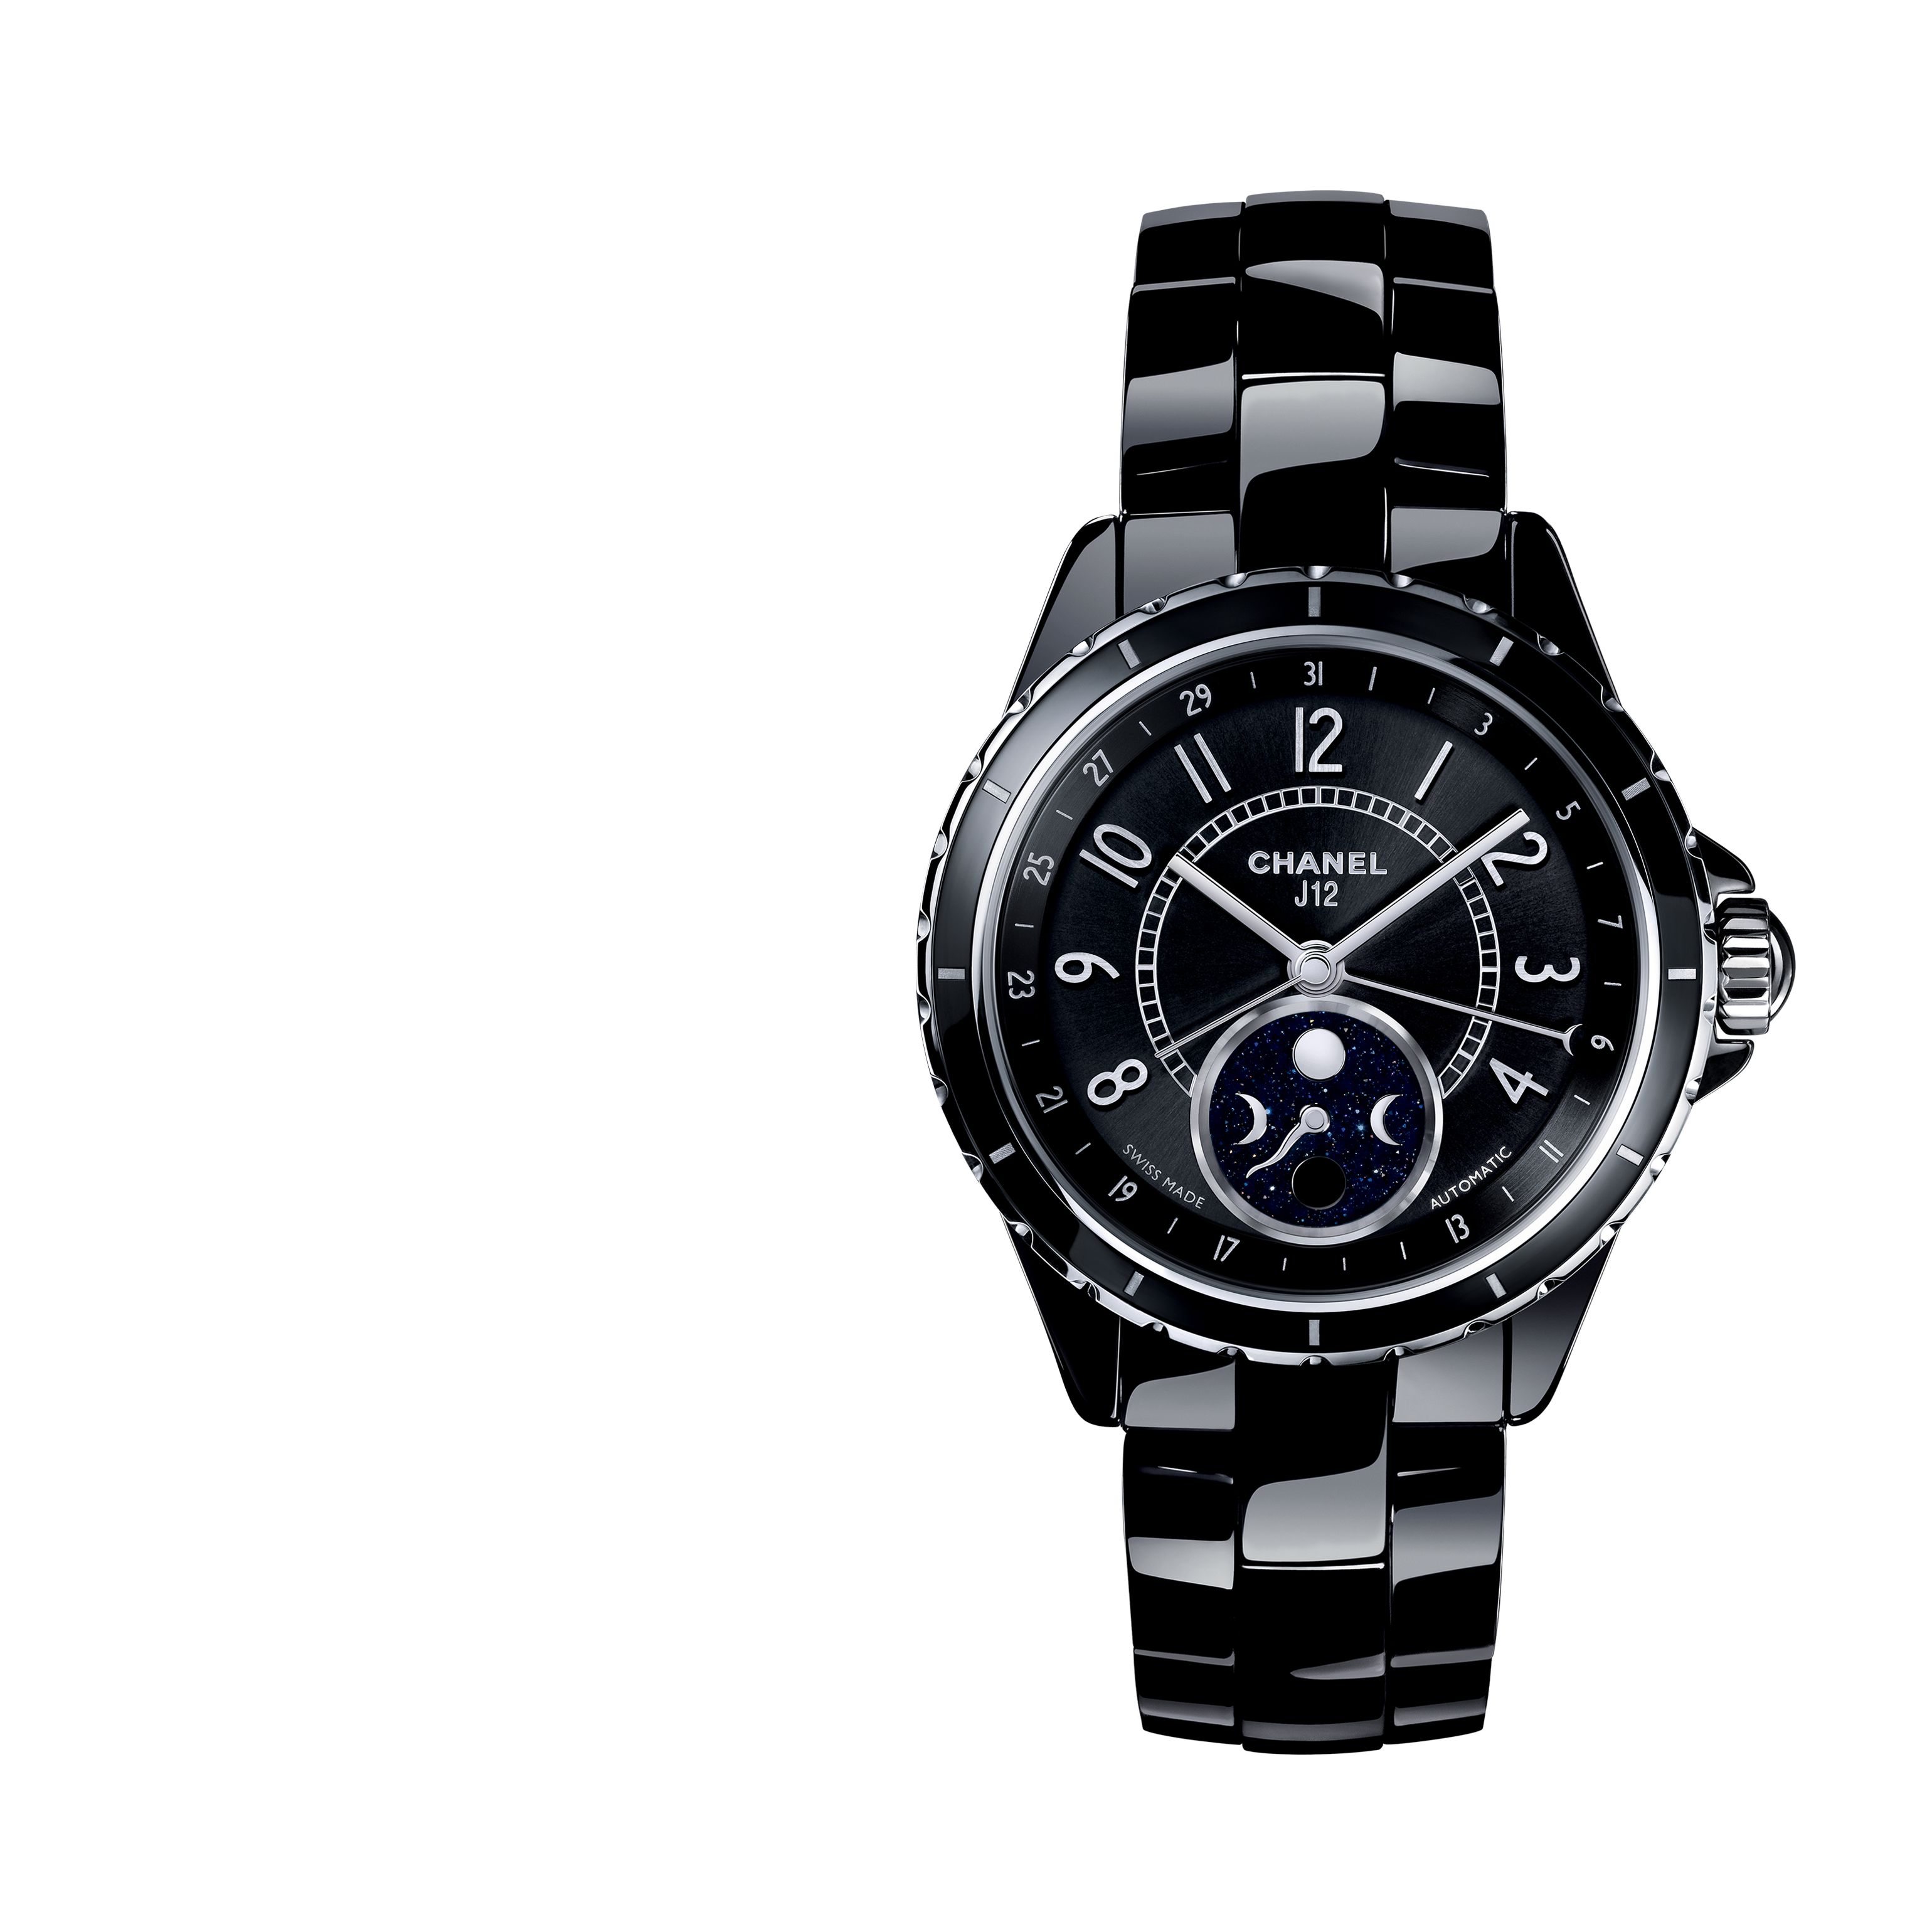 bf2fc8eadc1a Name  J12 Moon phase  Reference  H3406  Collection  J12  Materials  Black  ceramicSteel  Case  Black highly resistant ceramic and steel case ...